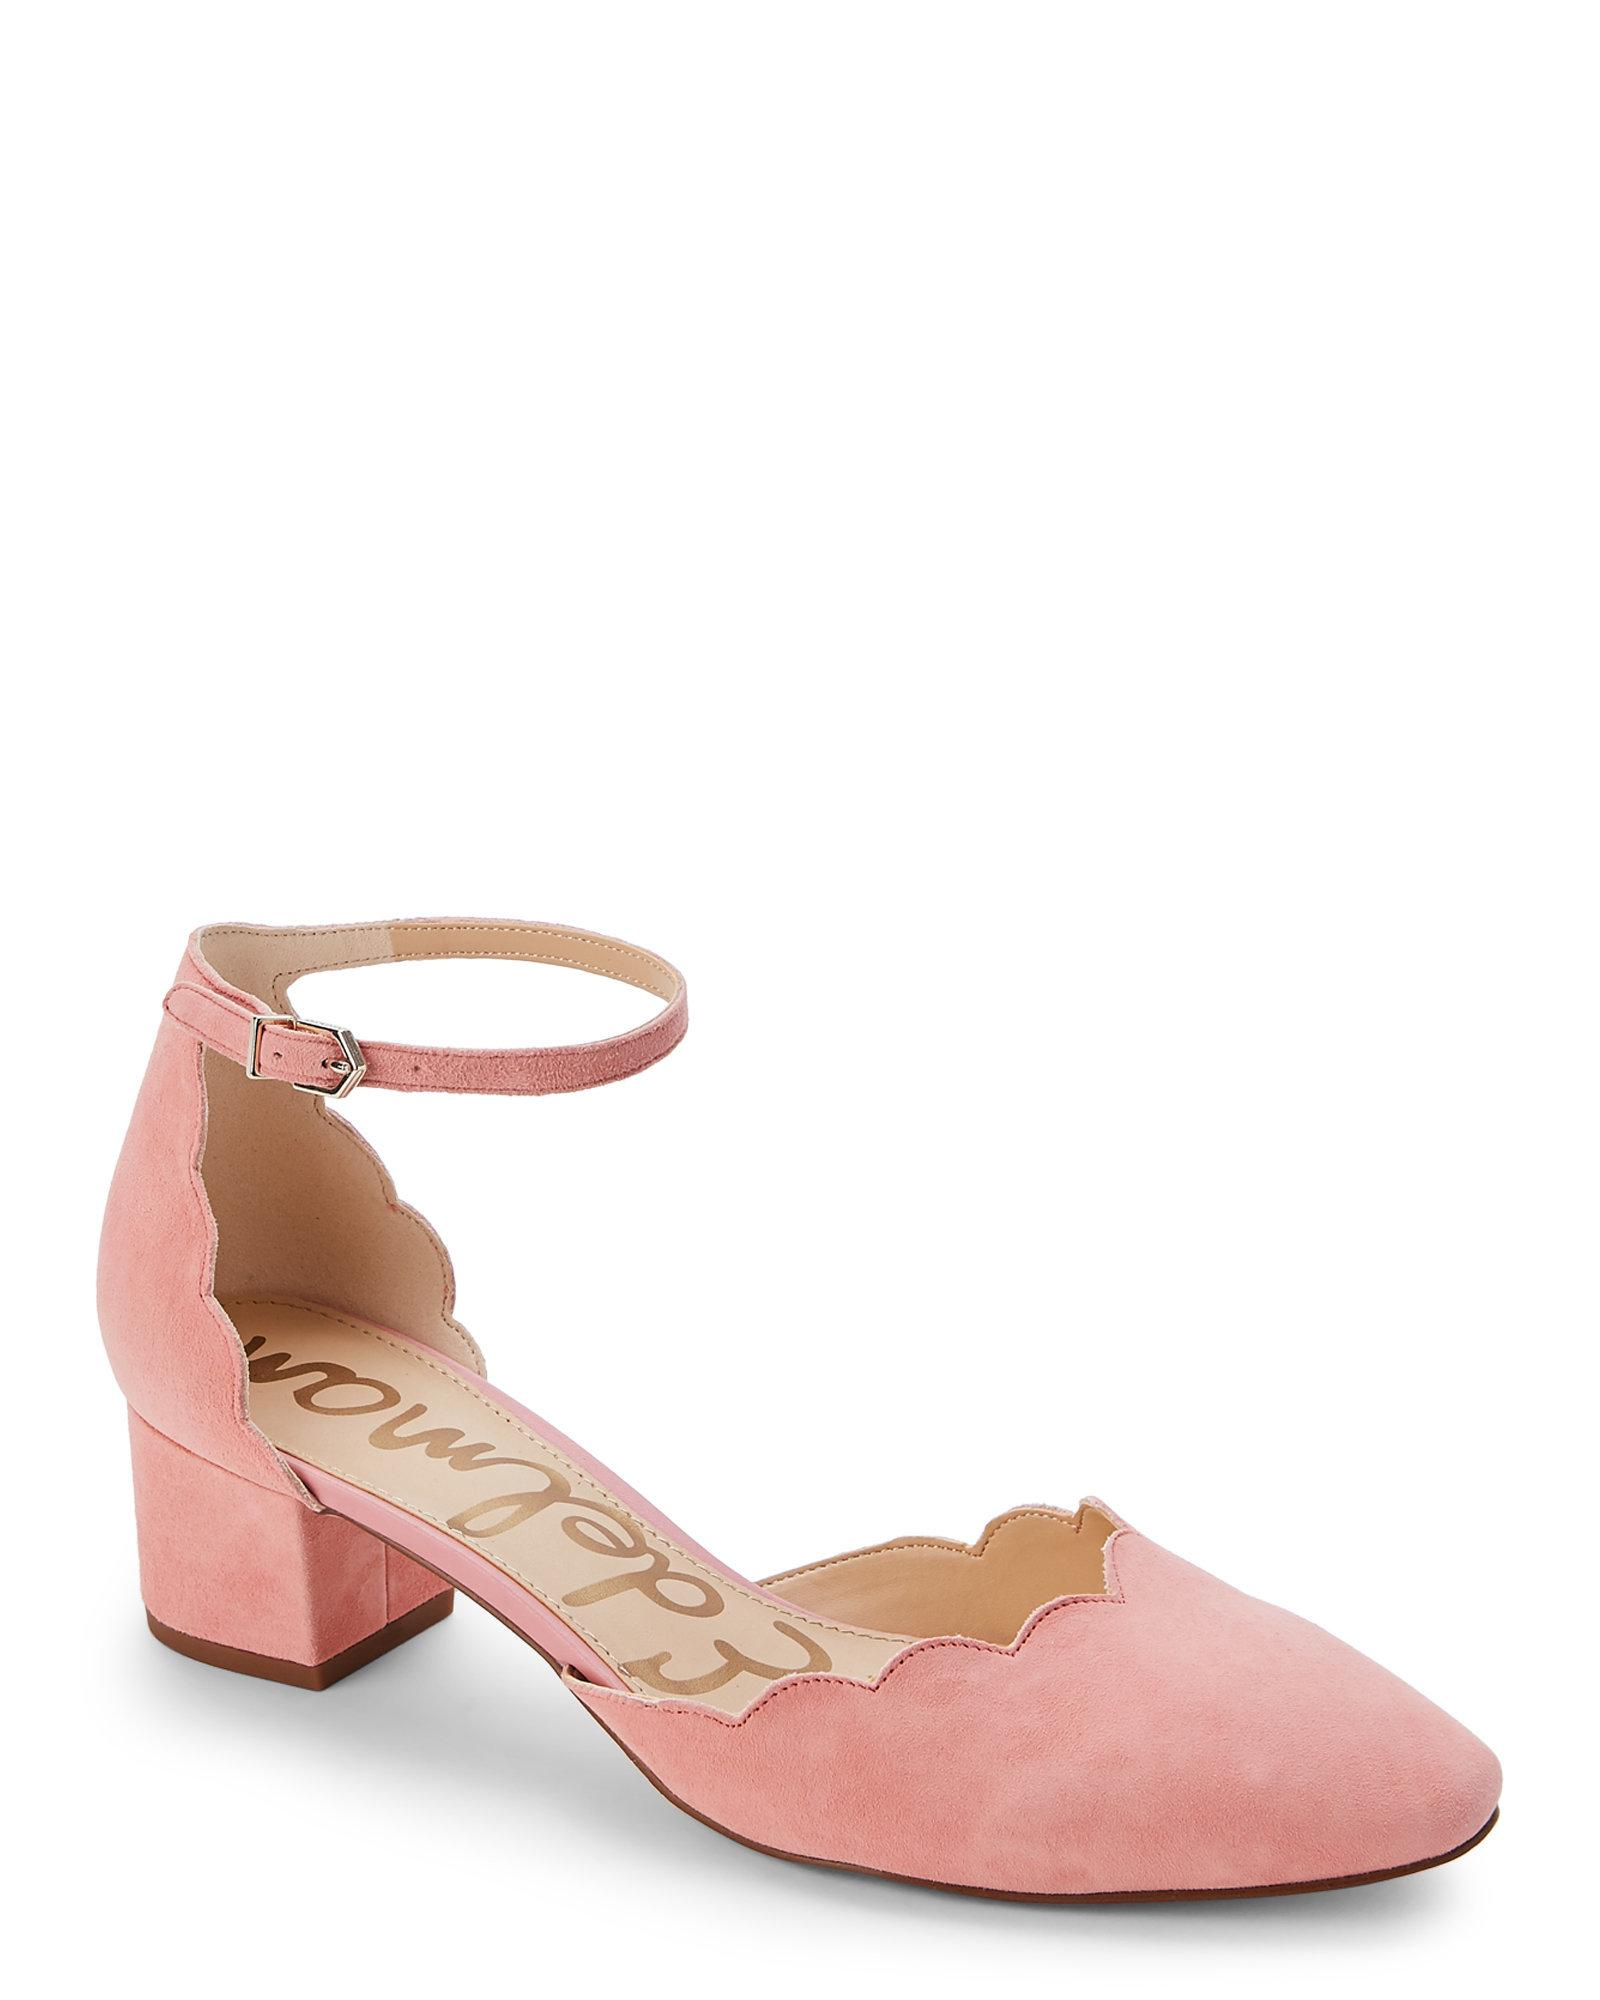 ff622effec49 Lyst - Sam Edelman Peach Blossom Lara Scalloped Ankle Strap Pumps